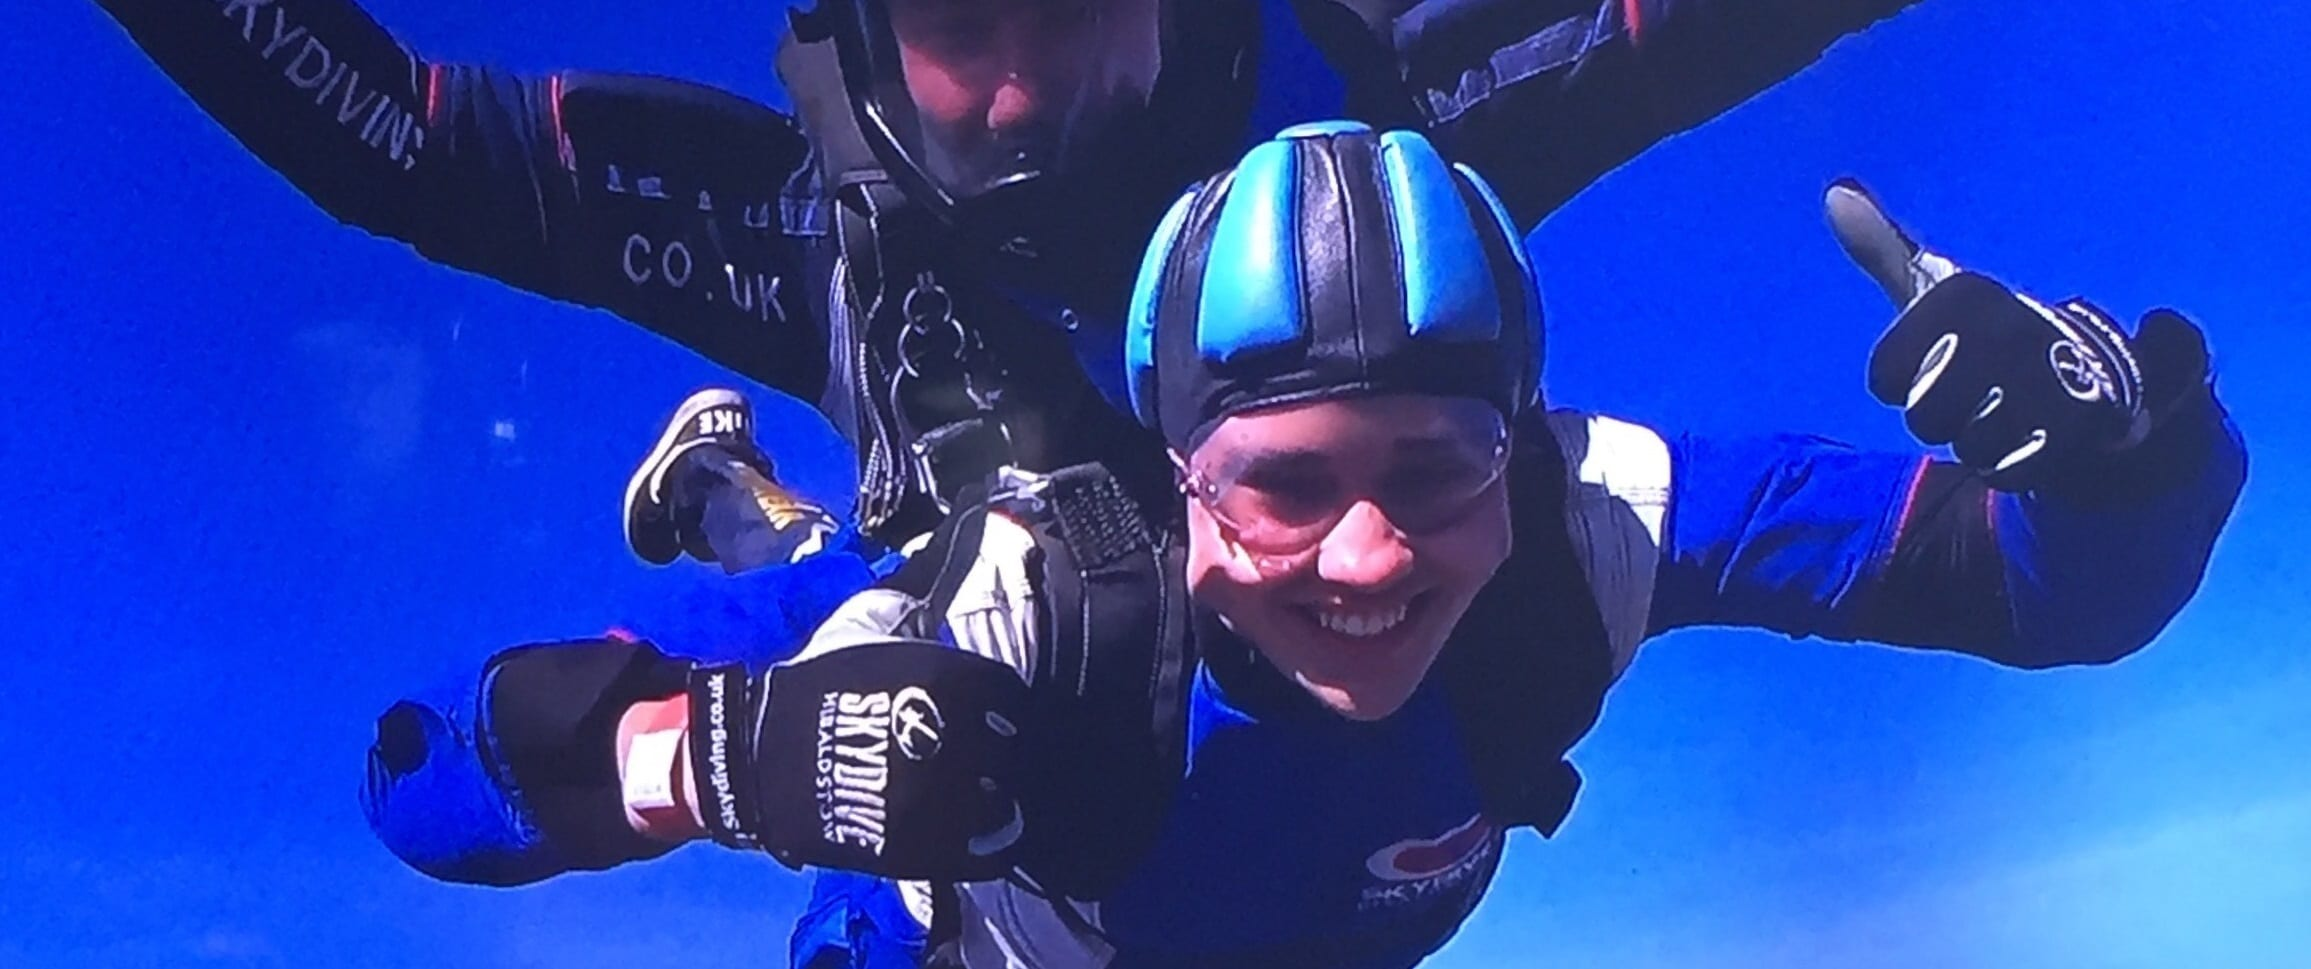 Charlie's skydive marking sixteen years of support